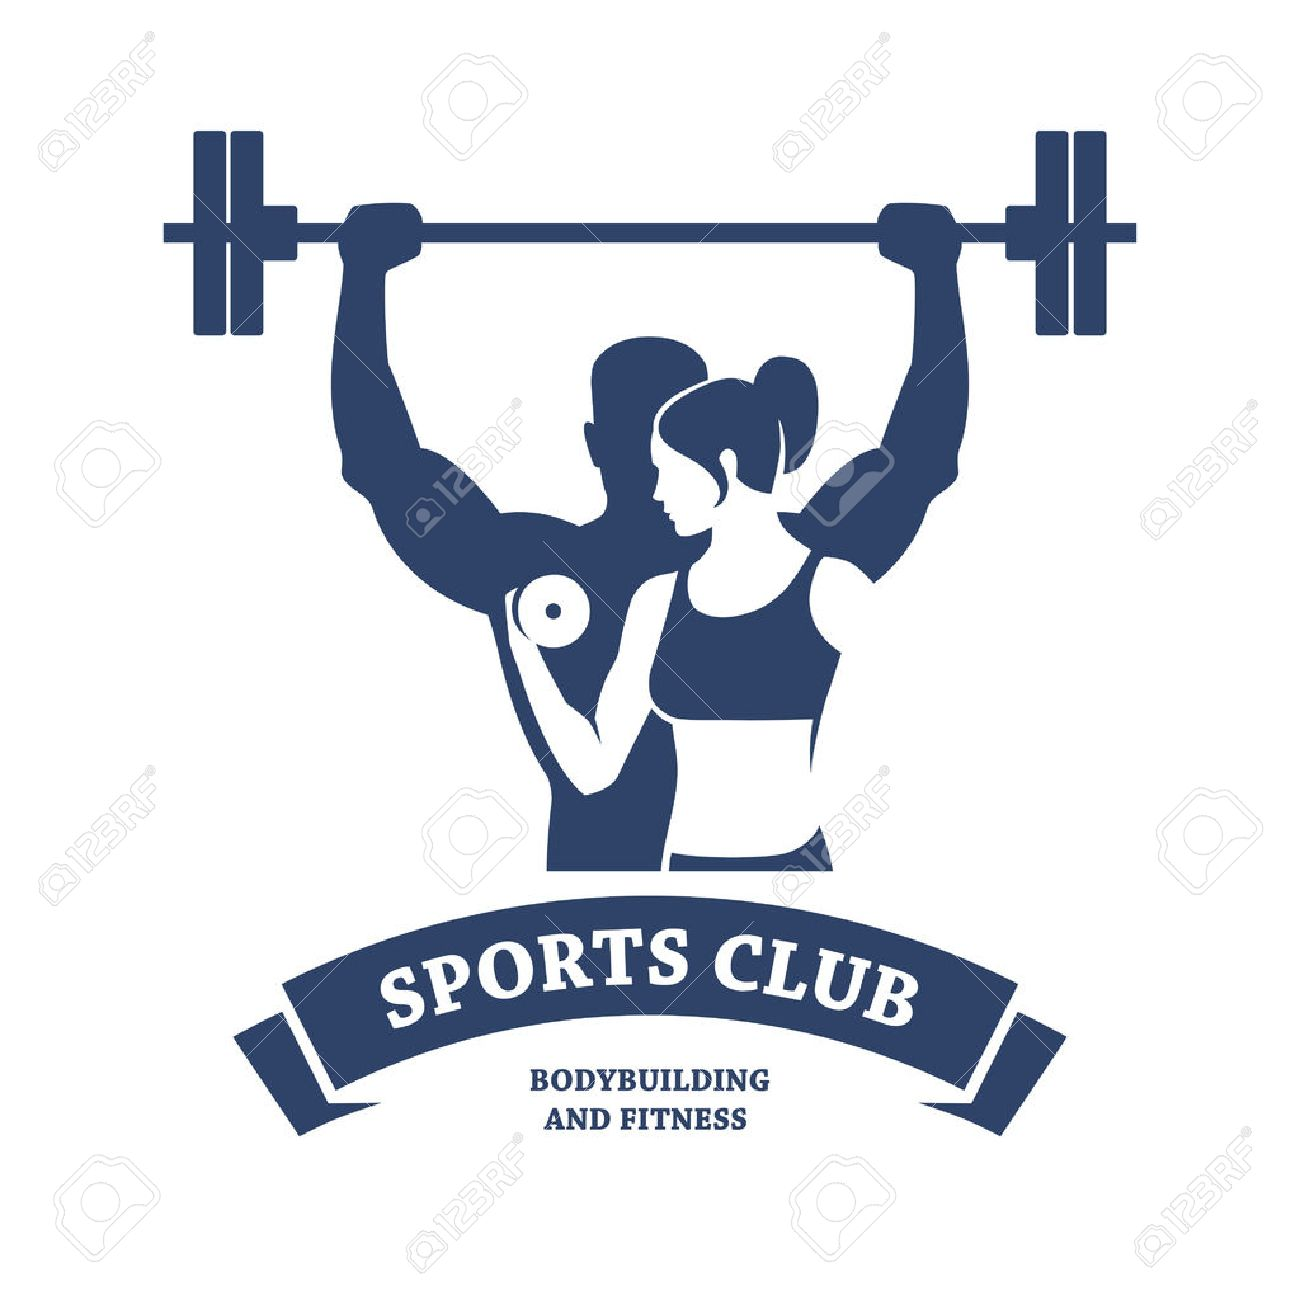 Fitness And Bodybuilding Club Royalty Free Cliparts, Vectors, And ...